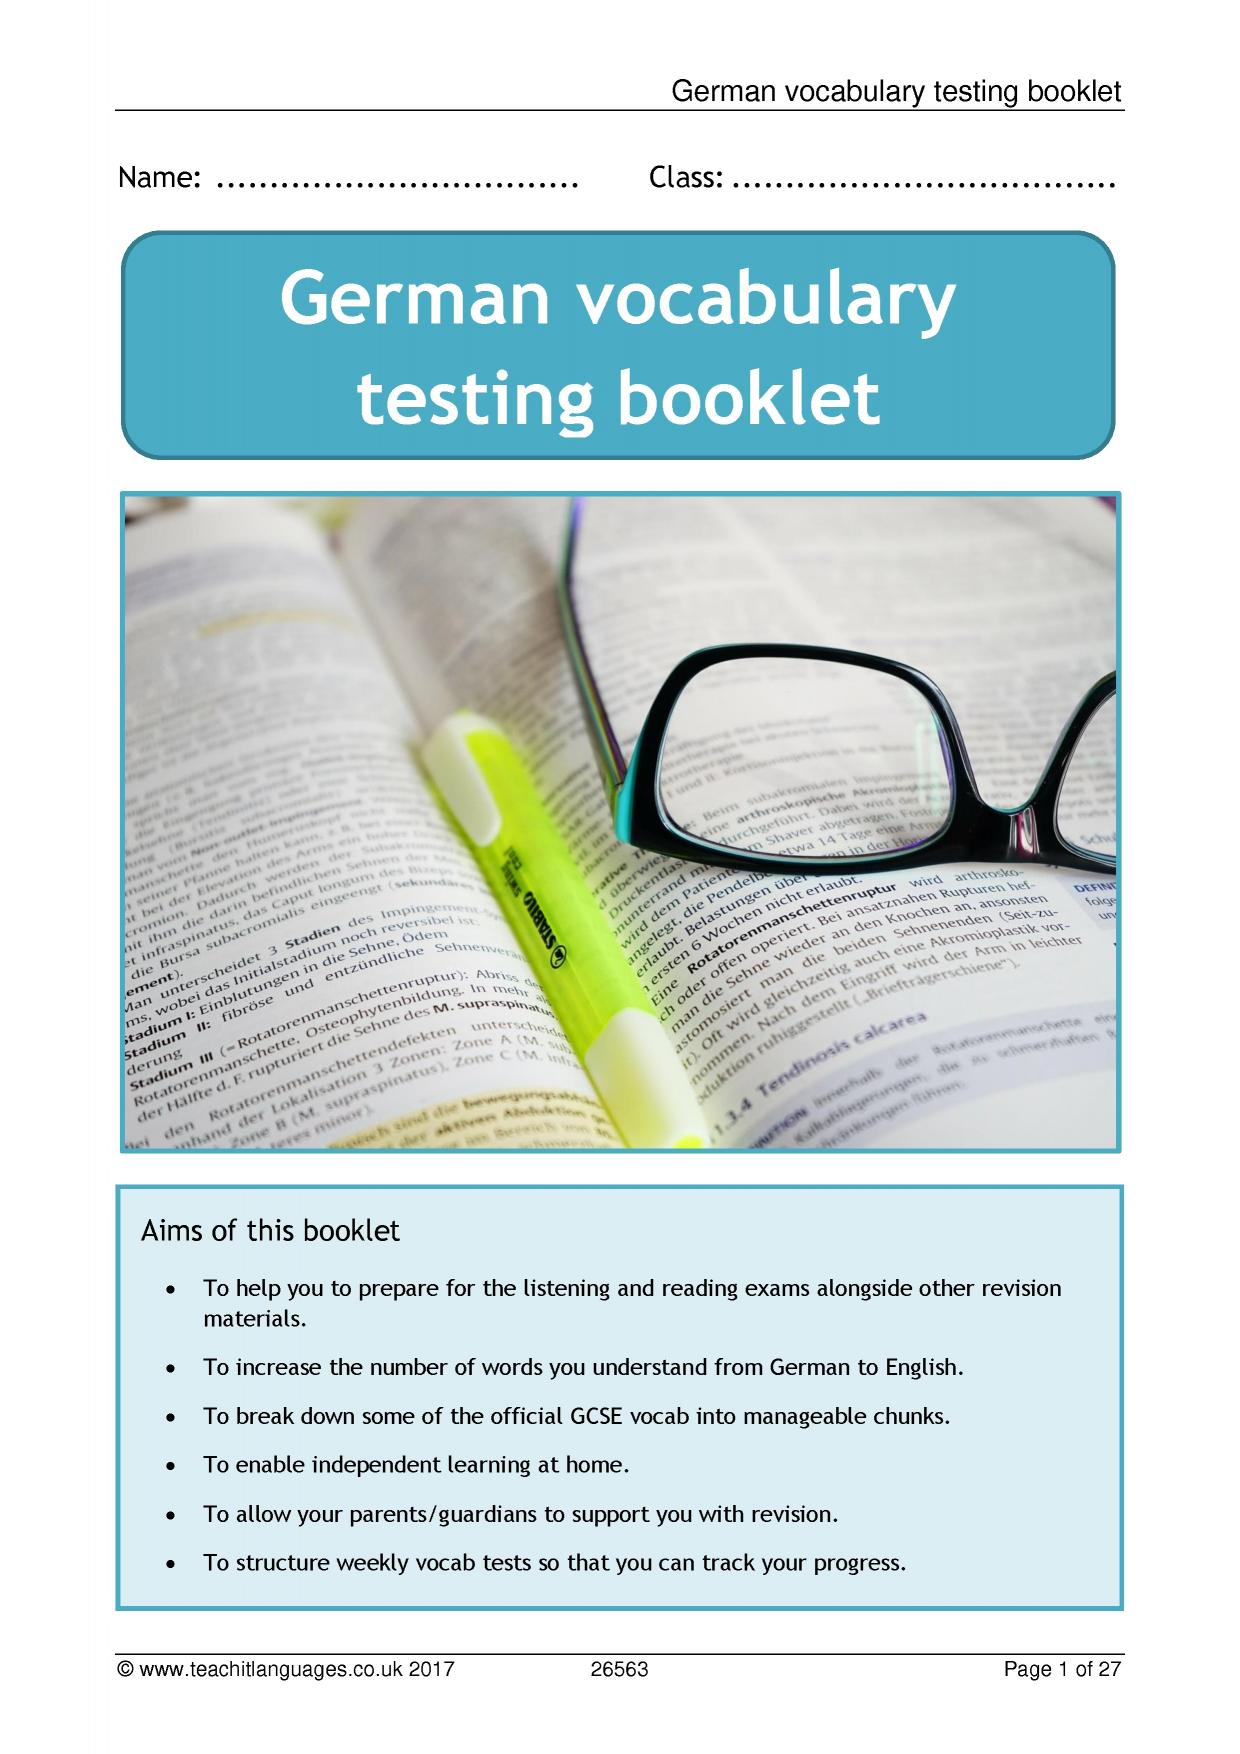 German Vocabulary Testing Booklet